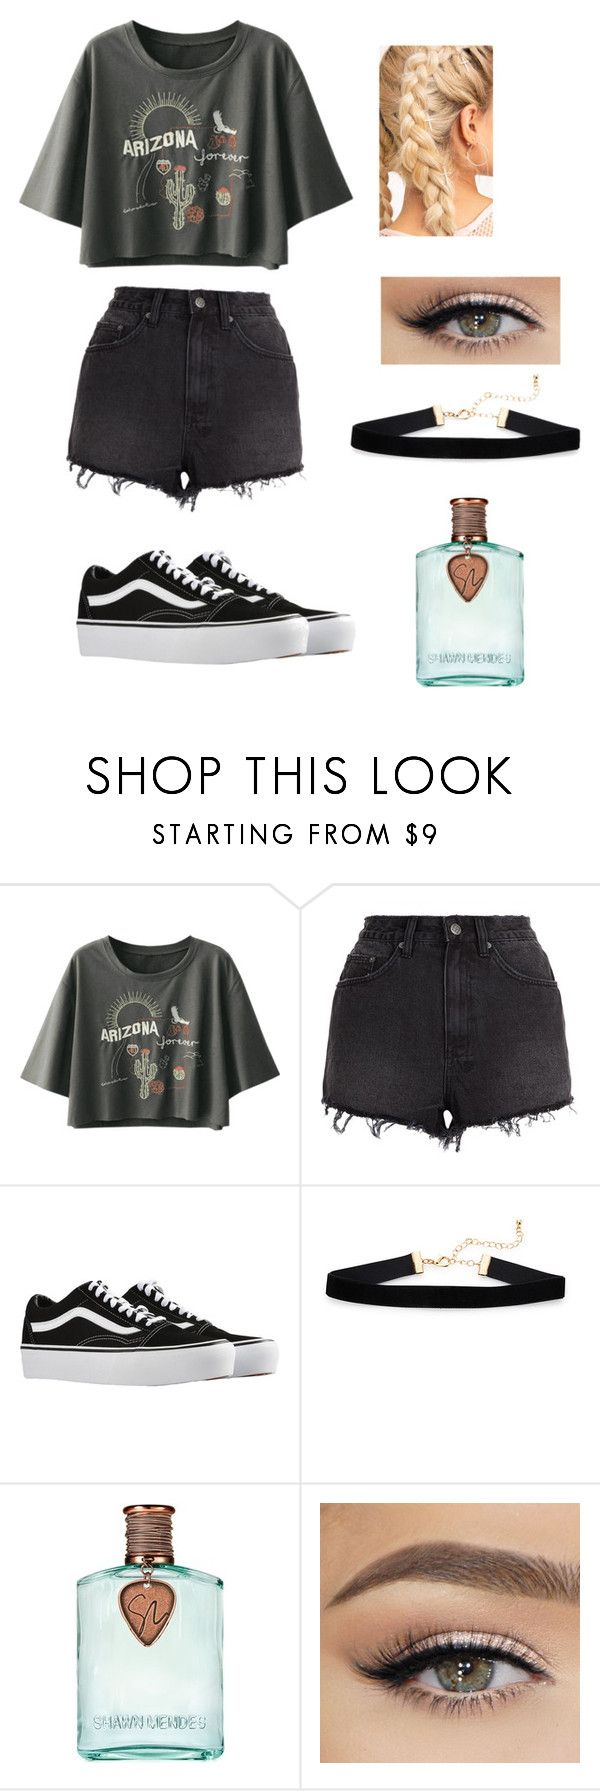 """""""Casual Day"""" by awkwardnath on Polyvore featuring Ksubi and Vans"""